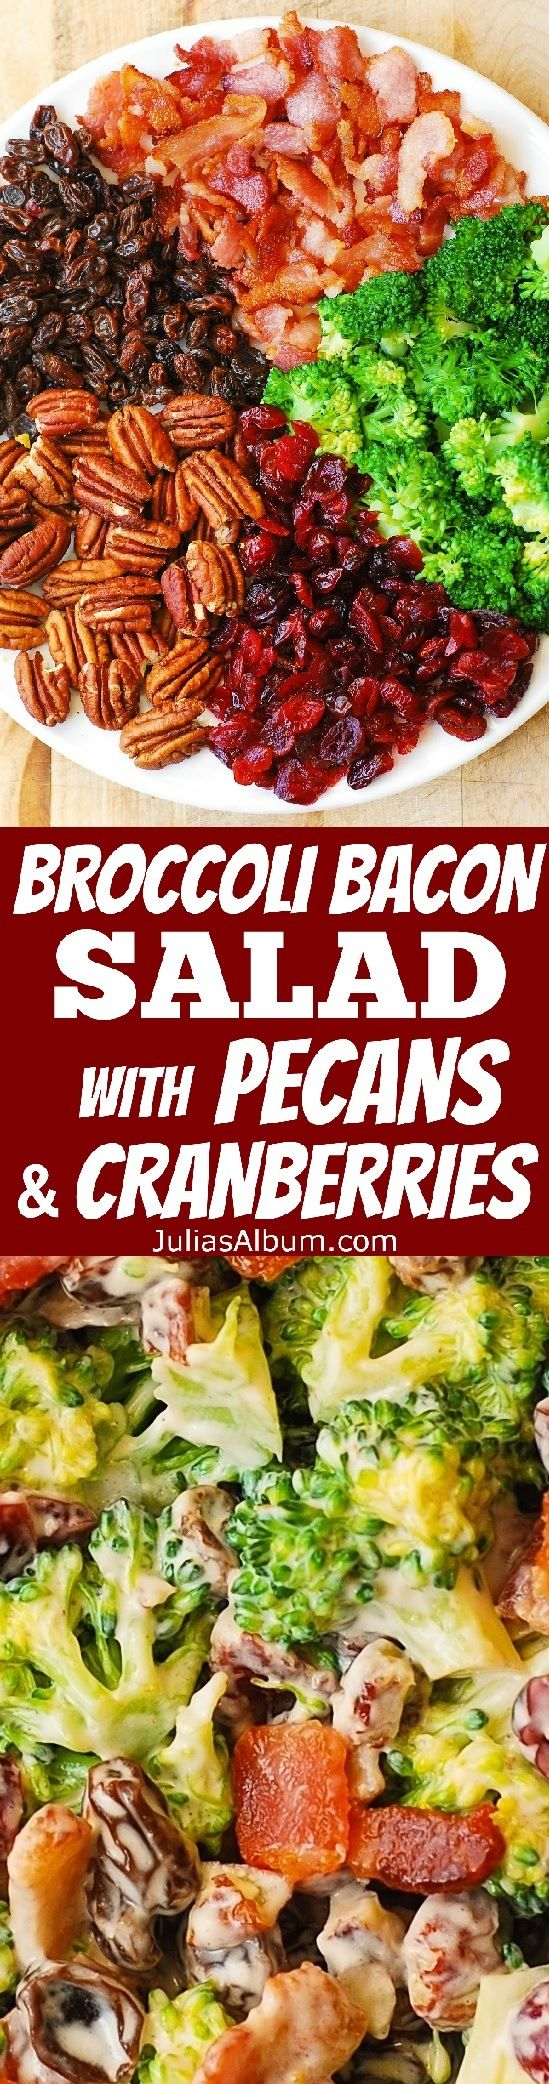 Broccoli Salad with Pecans, Cranberries, Raisins, and Bacon - healthy, DELICIOUS, gluten free salad, packed with fiber! (party food, picnic, potluck recipes) (Vegan Gluten Free Potluck)